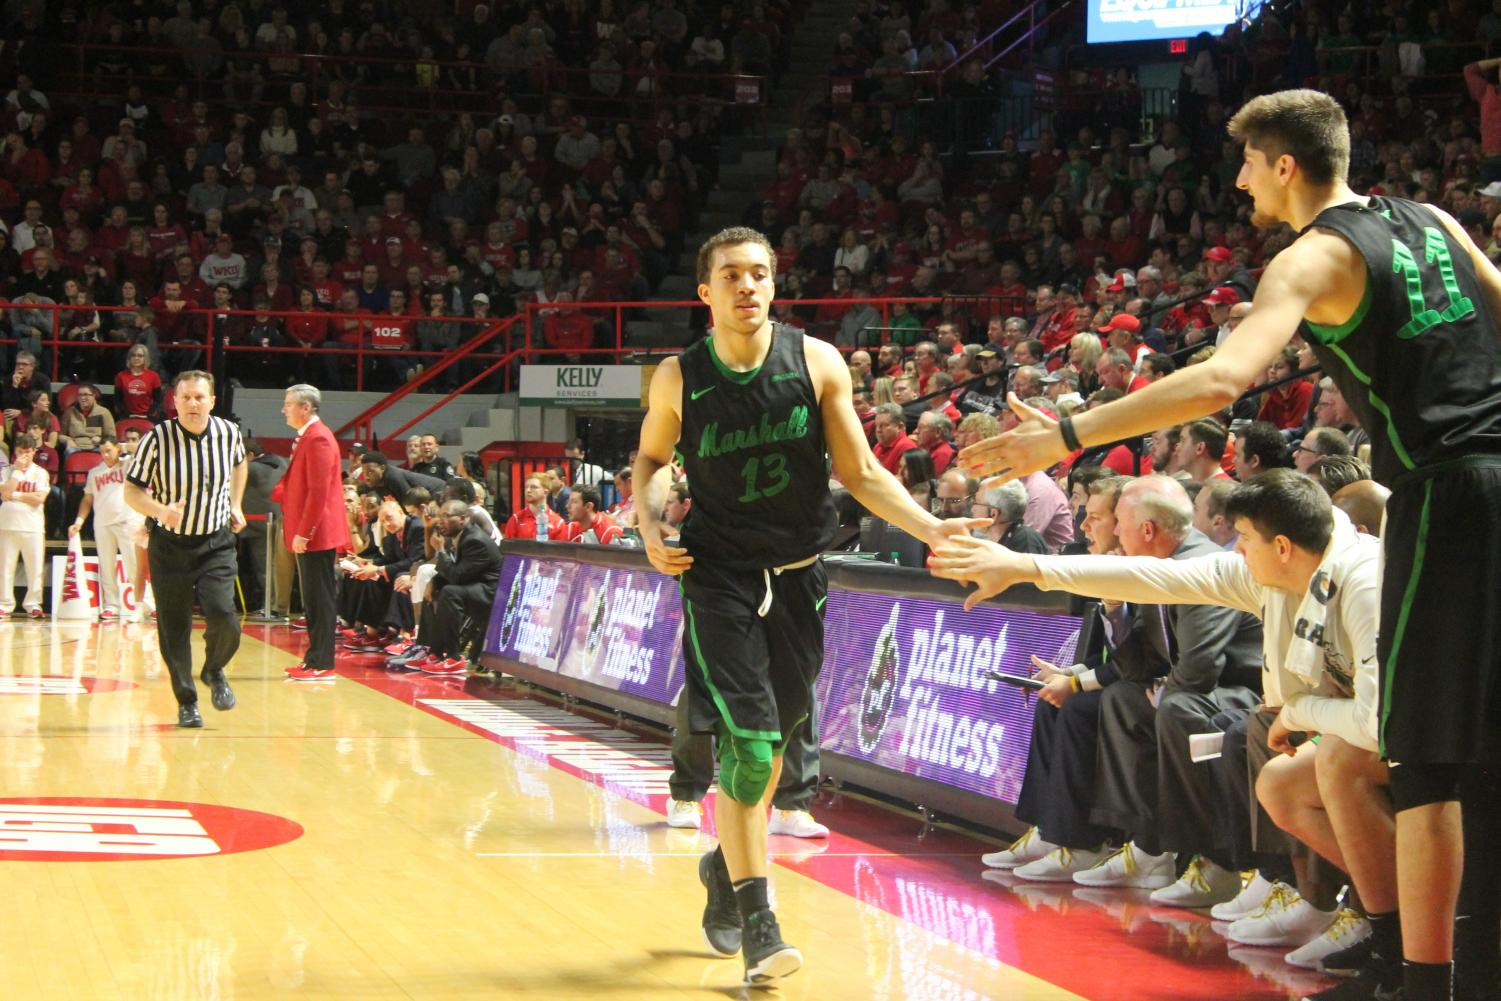 Freshman+guard+Jarrod+West+high+fives+his+teammates+after+hitting+a+three-pointer.+West+is+an+important+part+of+Marshall%27s+future.